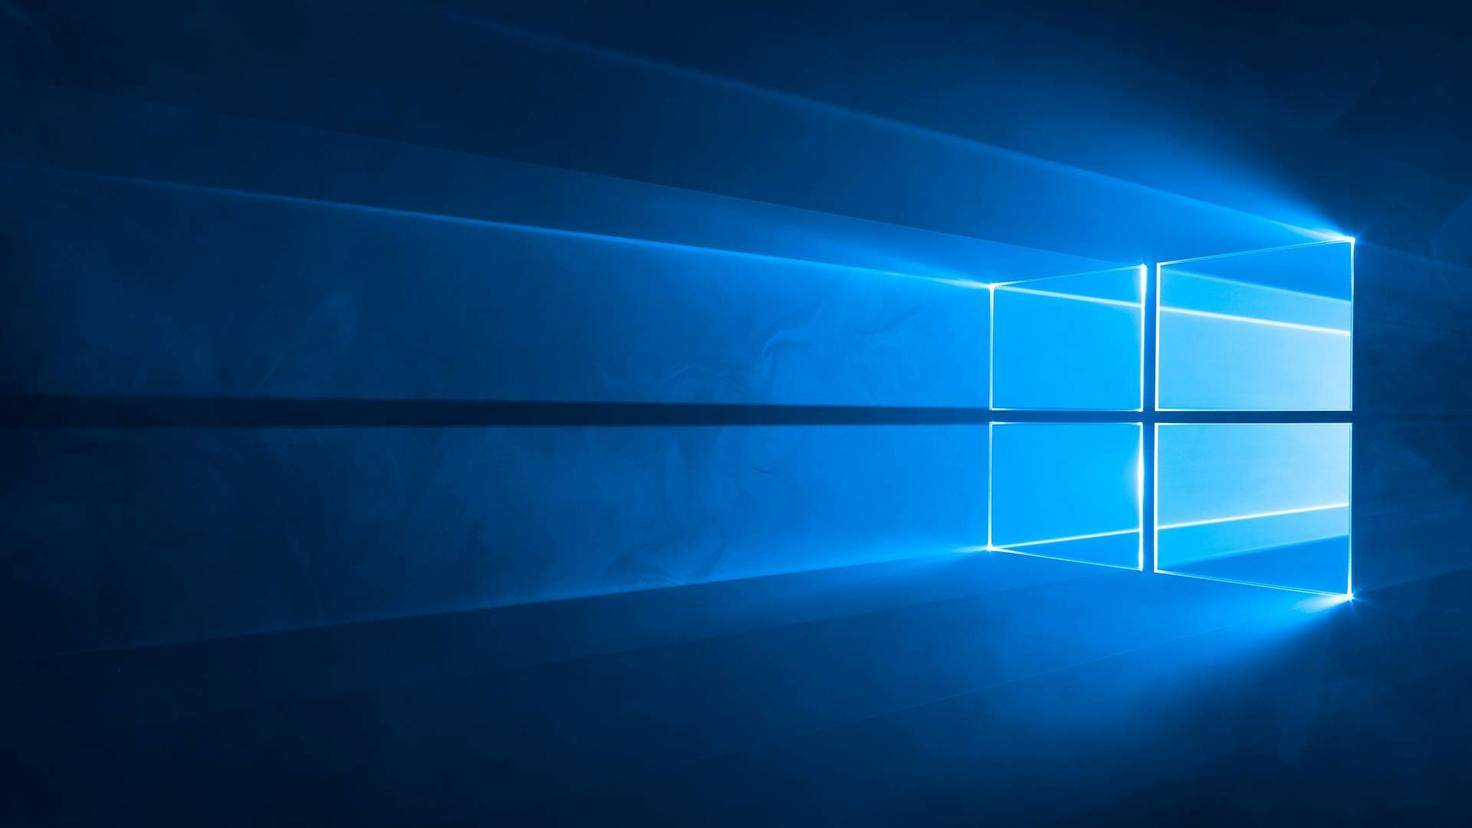 Windows 10 Wallpaper neu